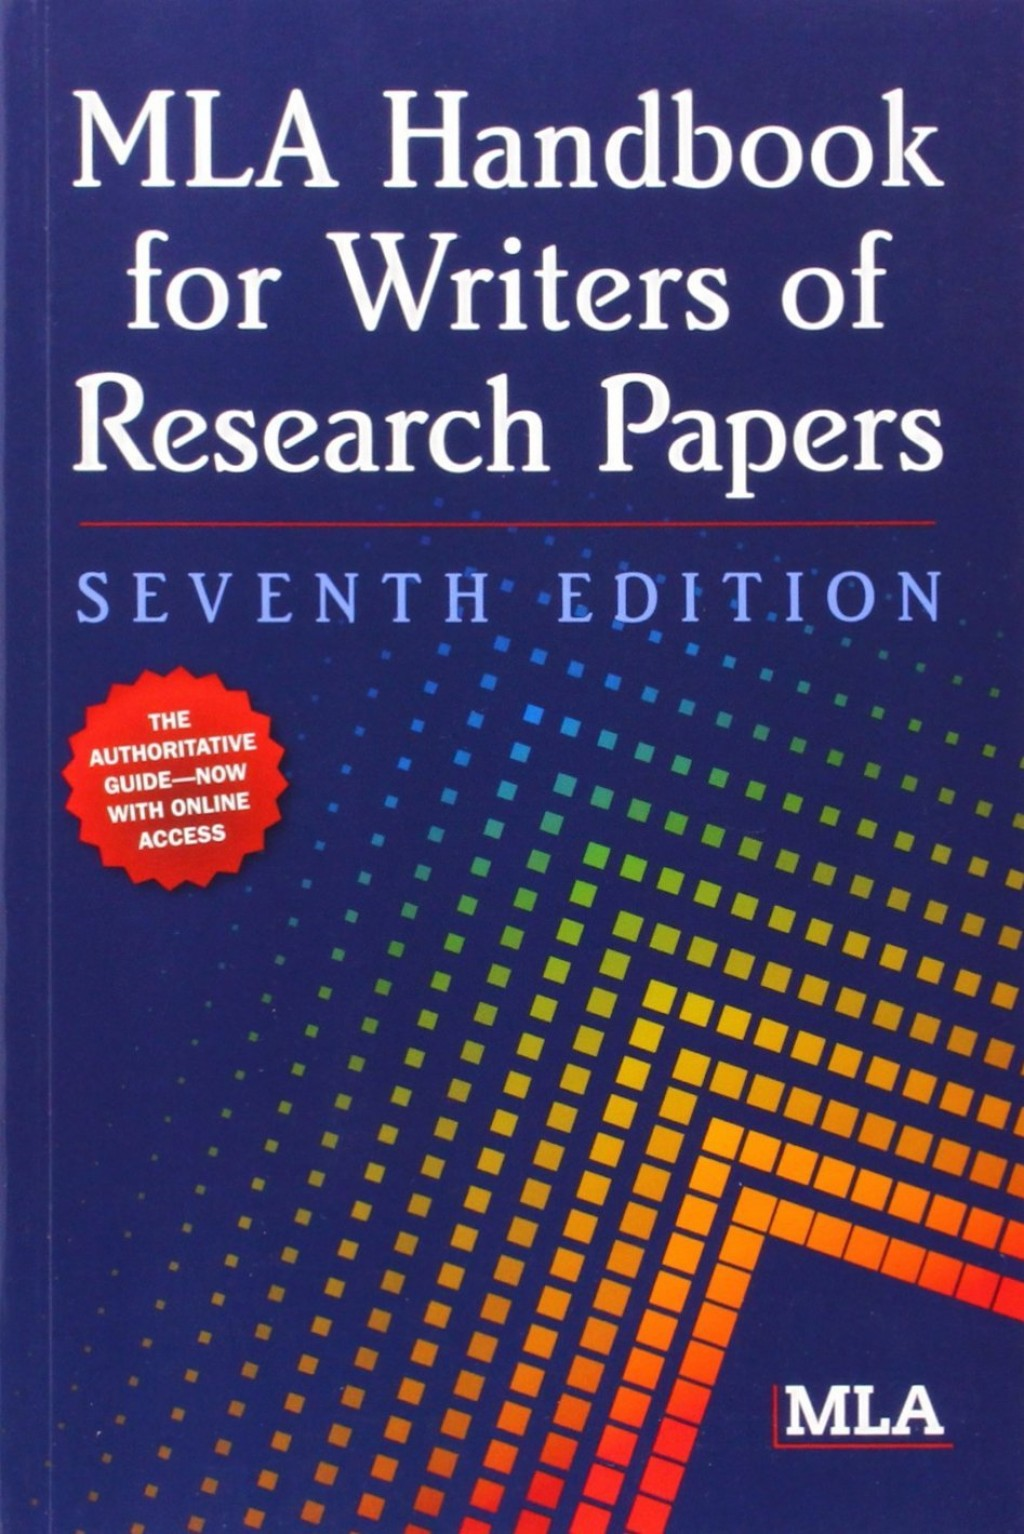 001 The Mla Handbook For Writers Of Research Papers Paper Fearsome 8th Edition 7th 2009 (8th Ed.) Large